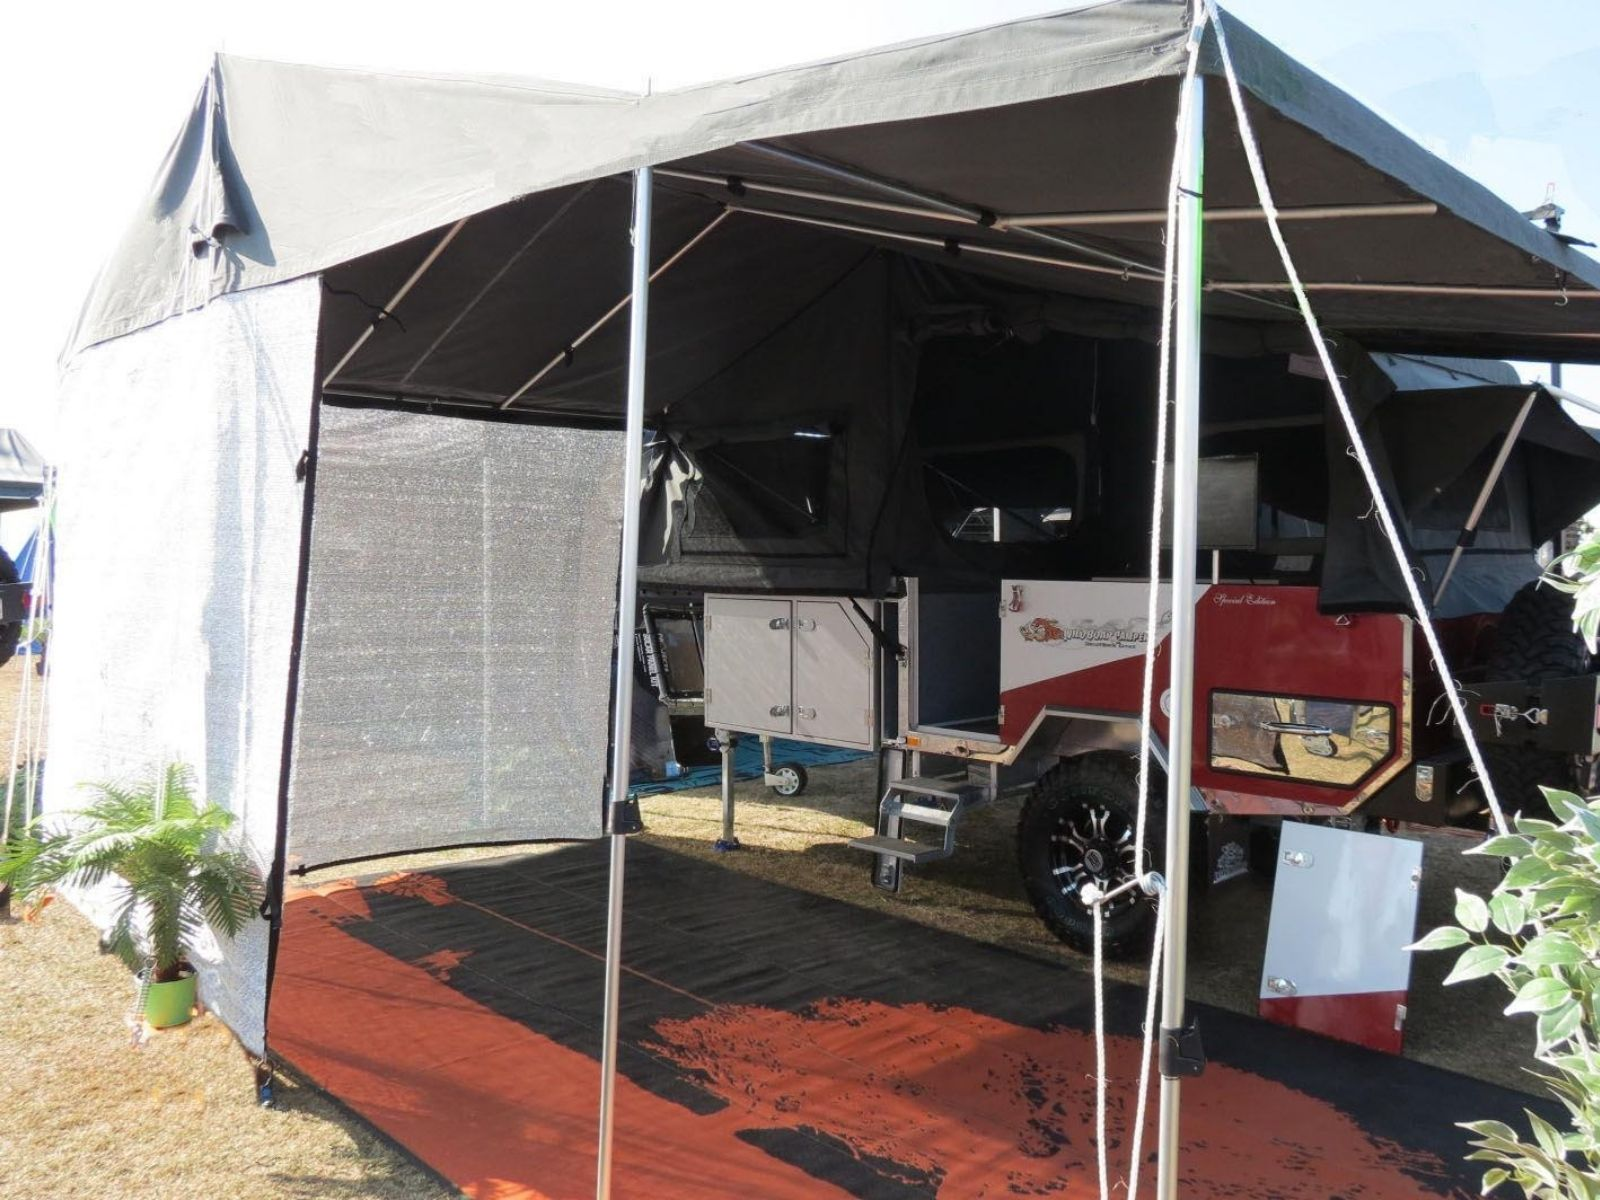 5.2m Shade Wall wrapped around the end of a camper trailer awning to create a shade room